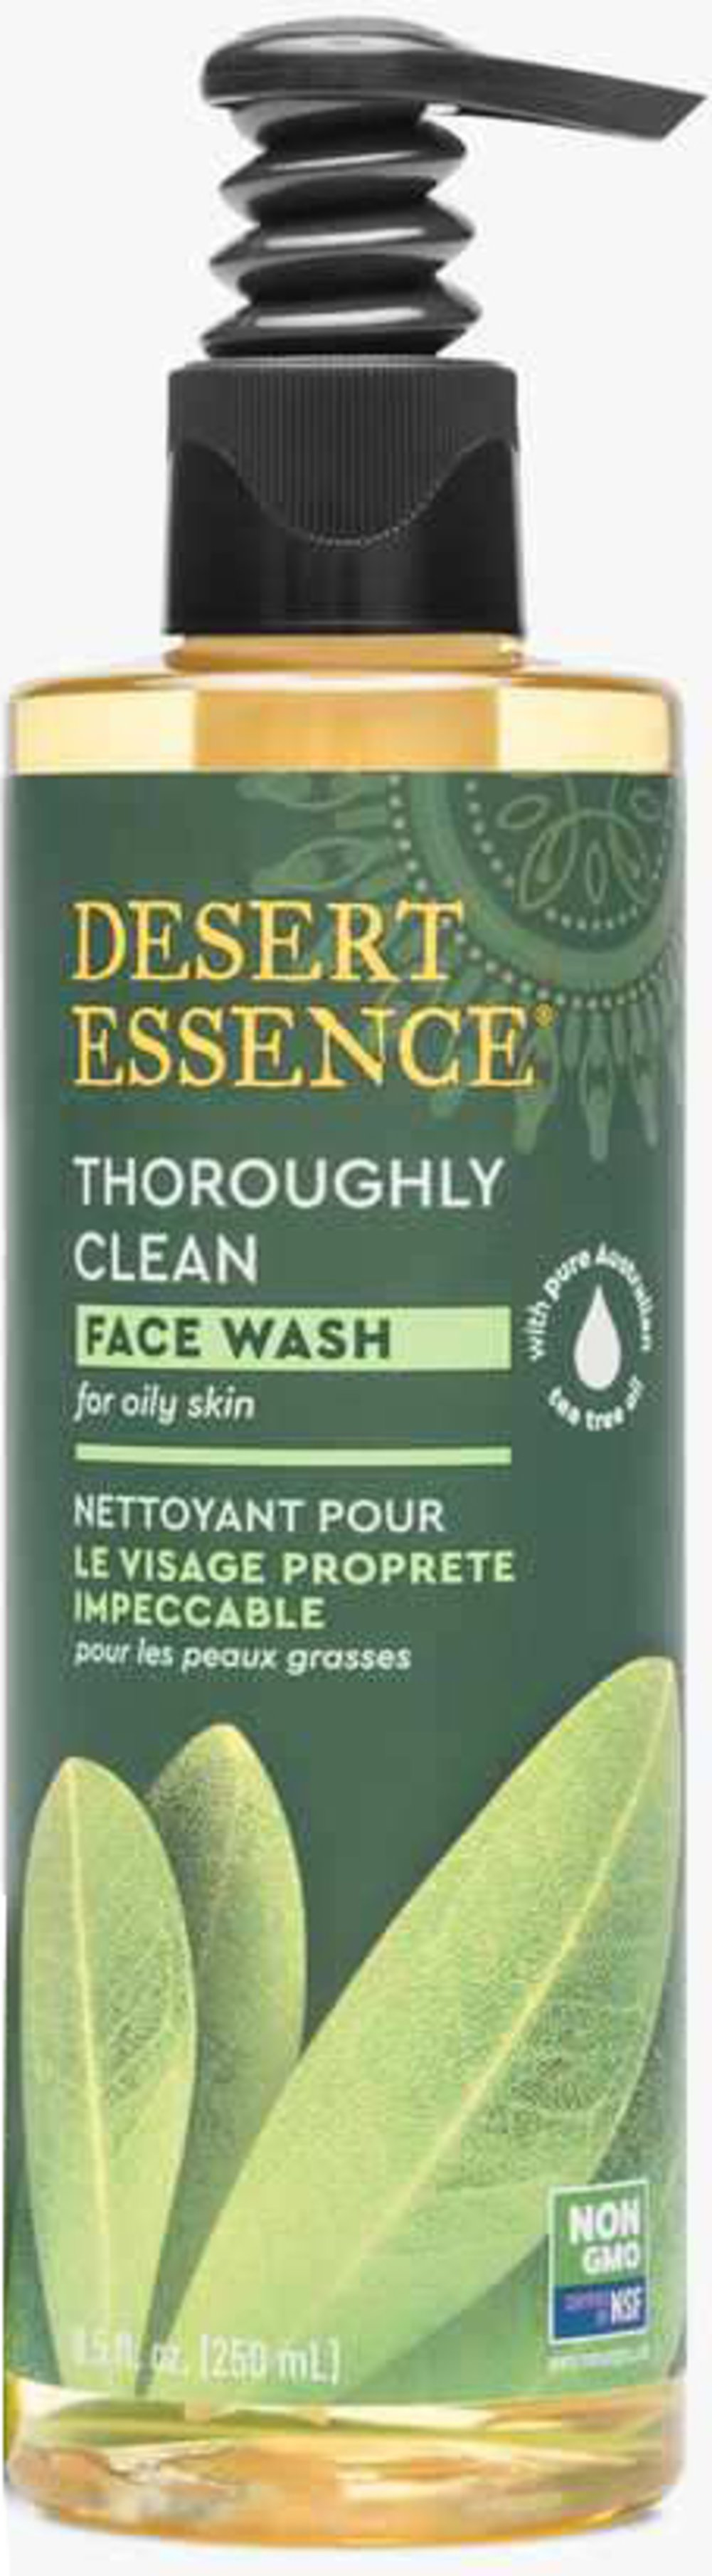 Tea Tree Oil Thoroughly Clean Face Wash for Oily/Combination Skin  8 fl oz Face Wash  $6.09